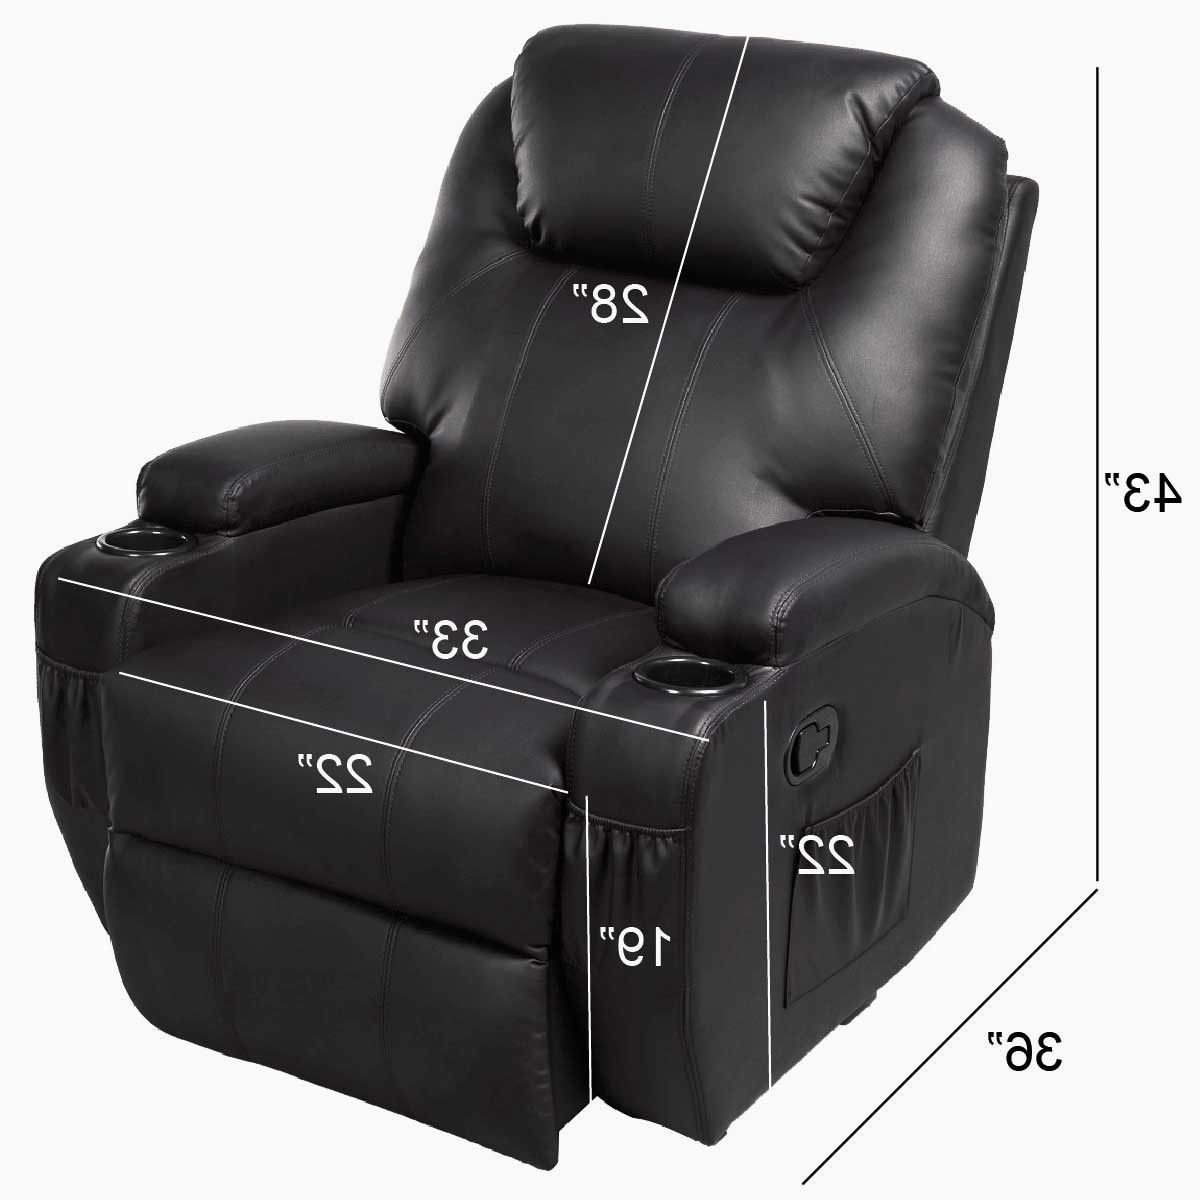 Fashionable Amazon: Ghp Black Sturdy Ergonomic Seating Massage Recliner Regarding Ergonomic Sofas And Chairs (View 9 of 15)